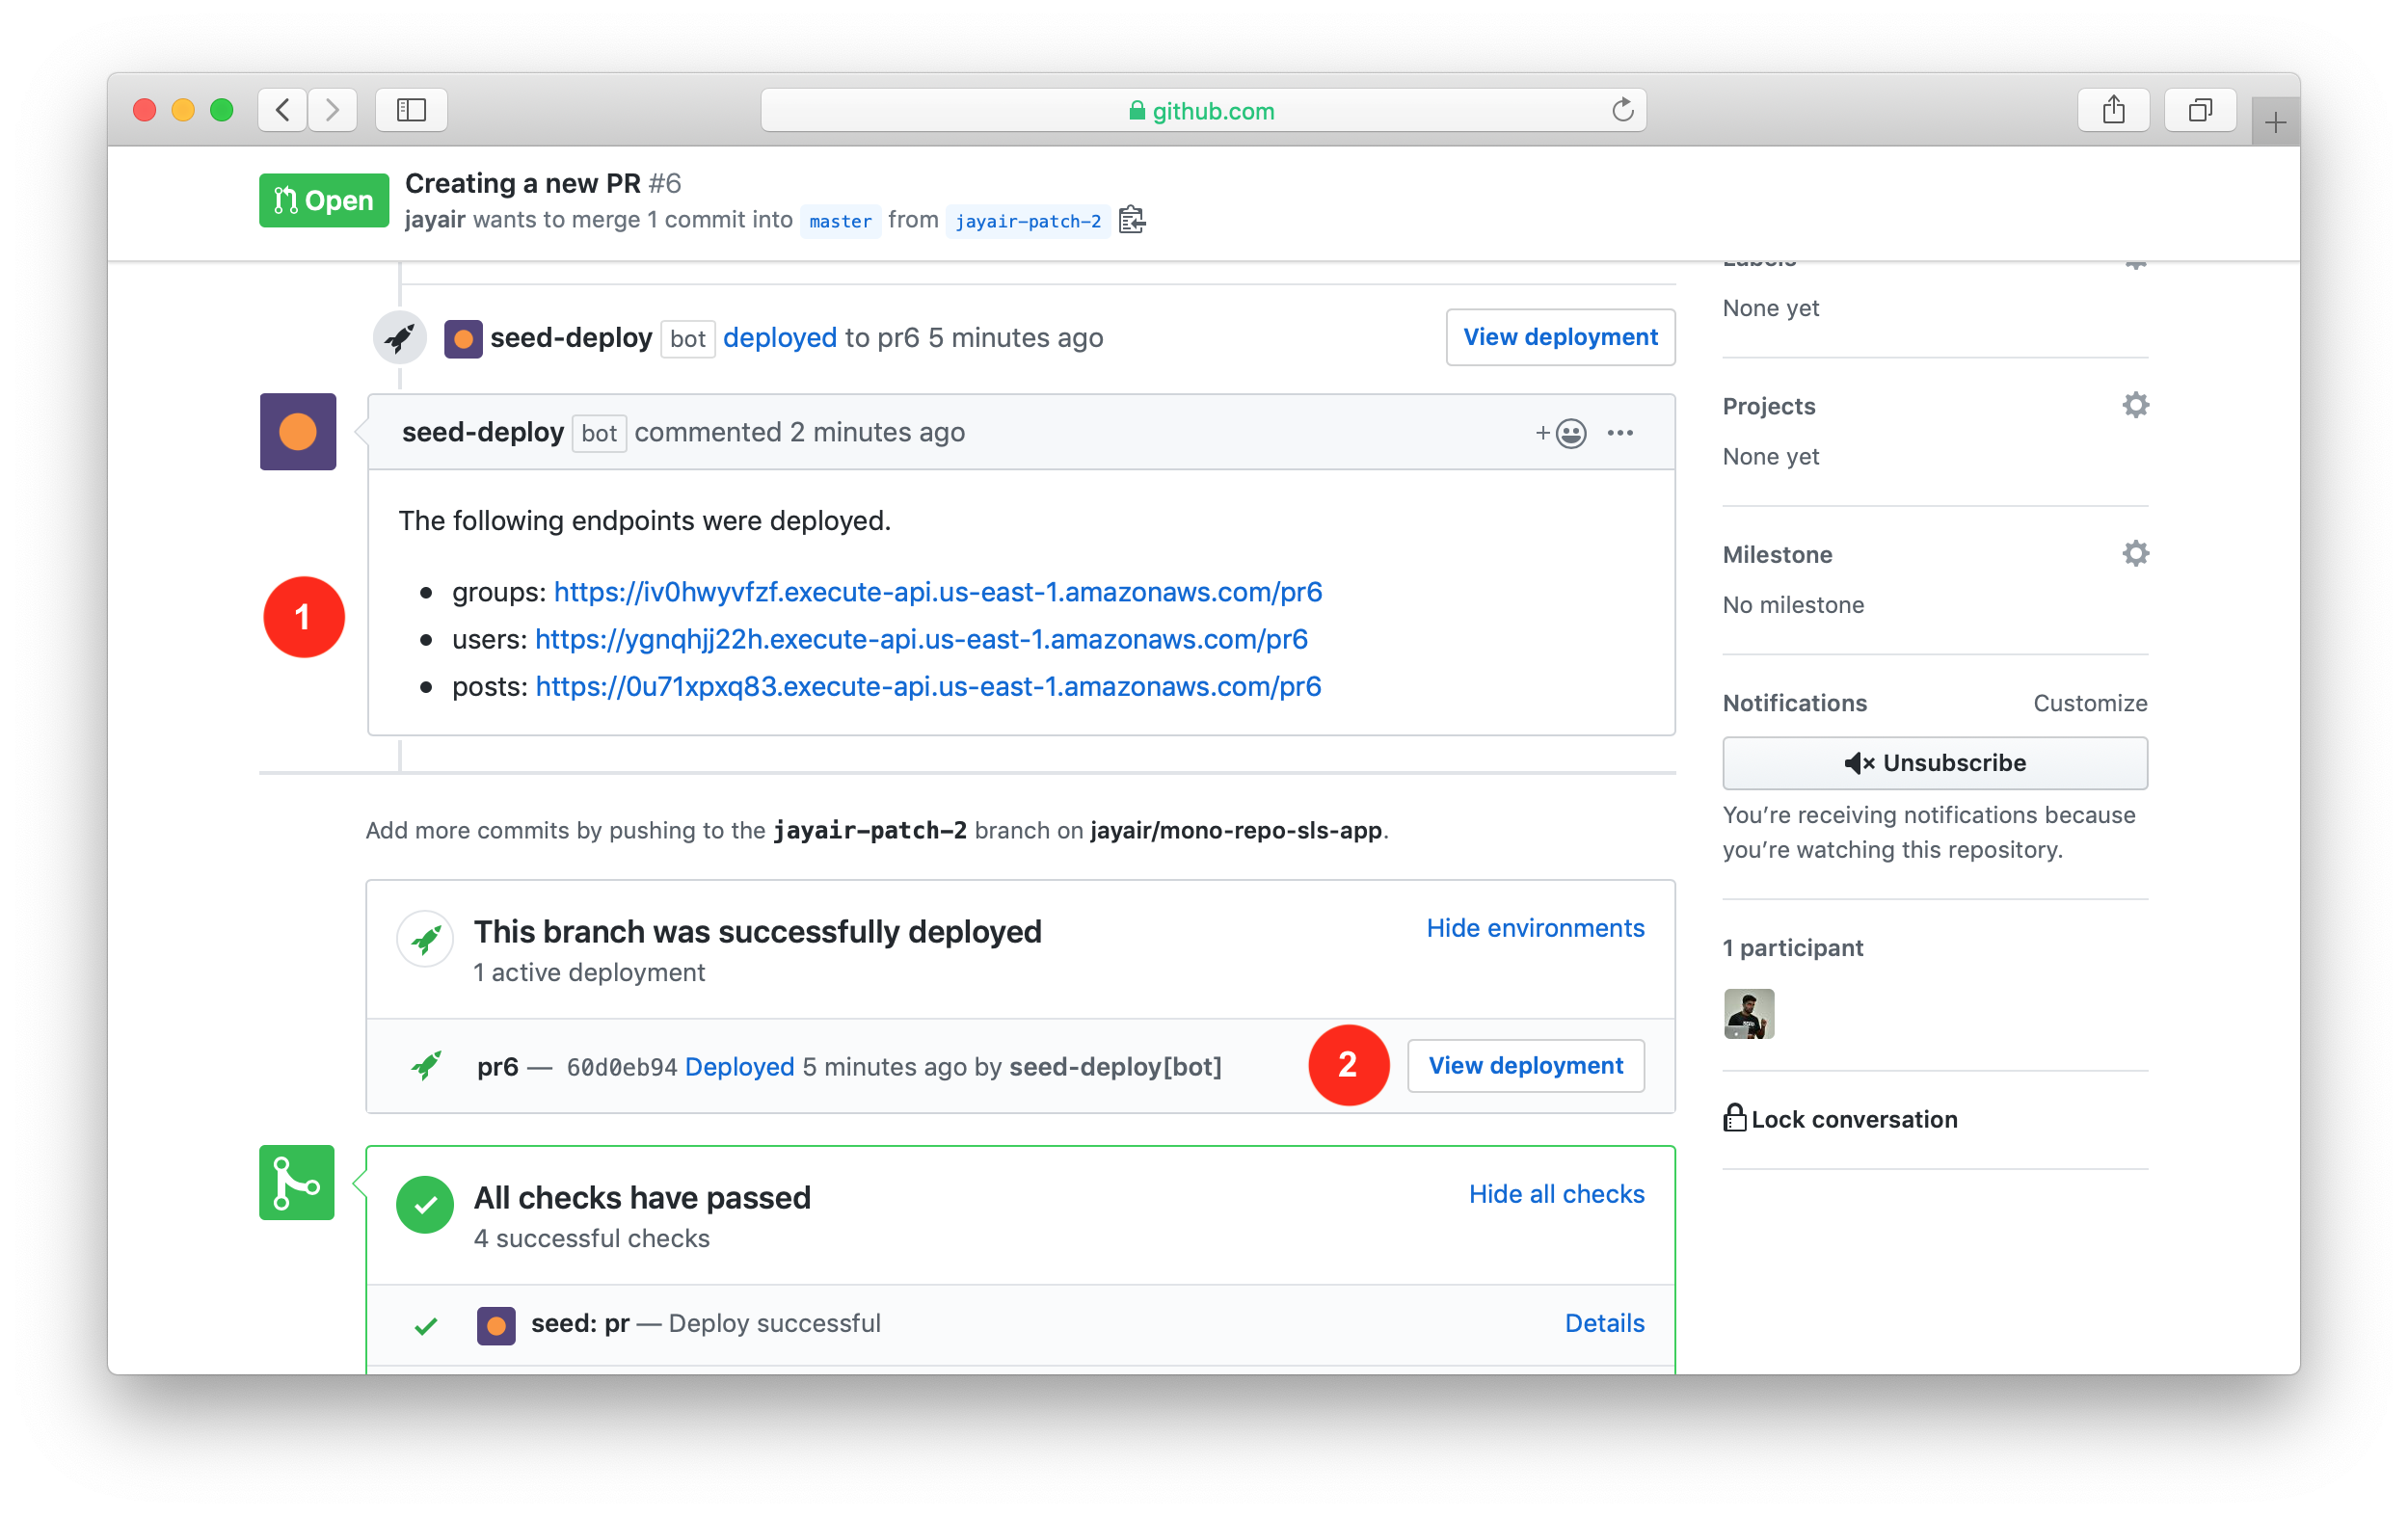 Seed PR complete info in GitHub